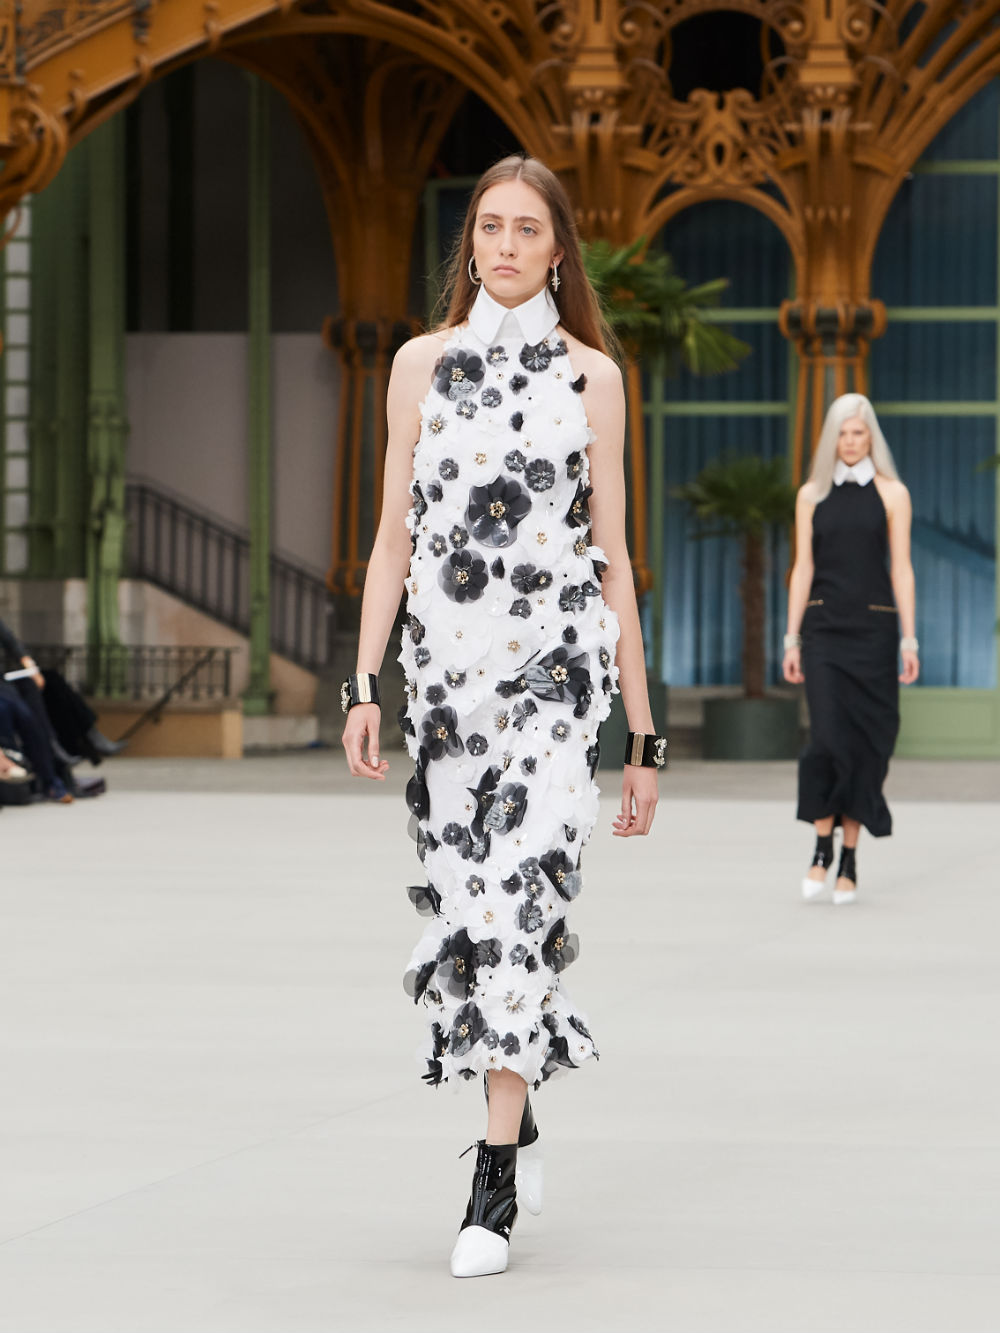 Cruise_collection_Chanel 2019 - 2020 (46)